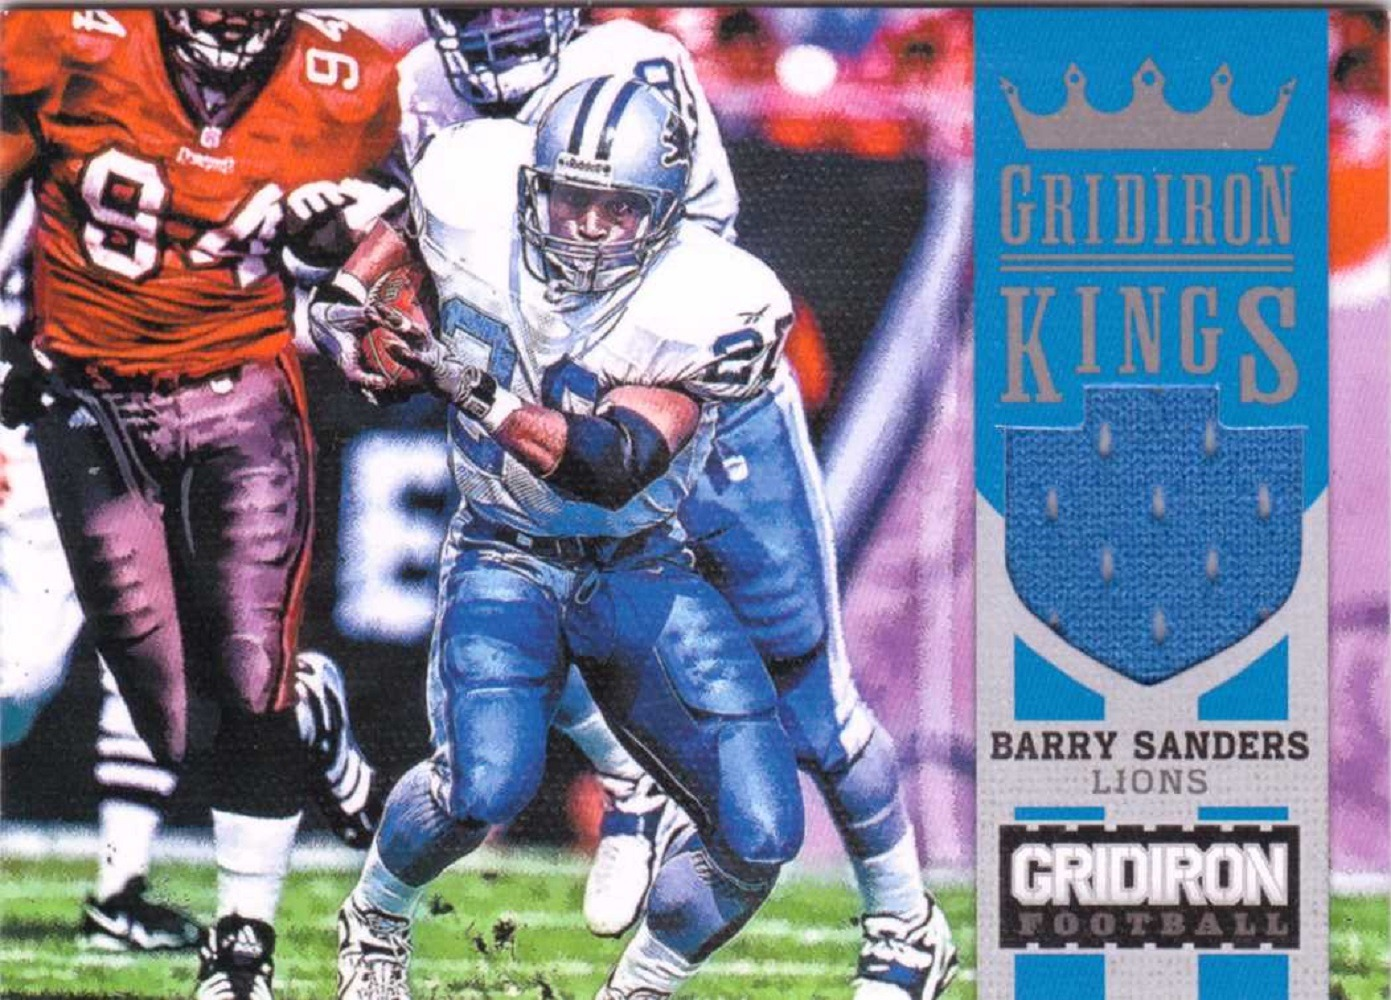 Barry Sanders 2012 Panini Gridiron Kings Jersey #7 Game Worn Relic Patch /99